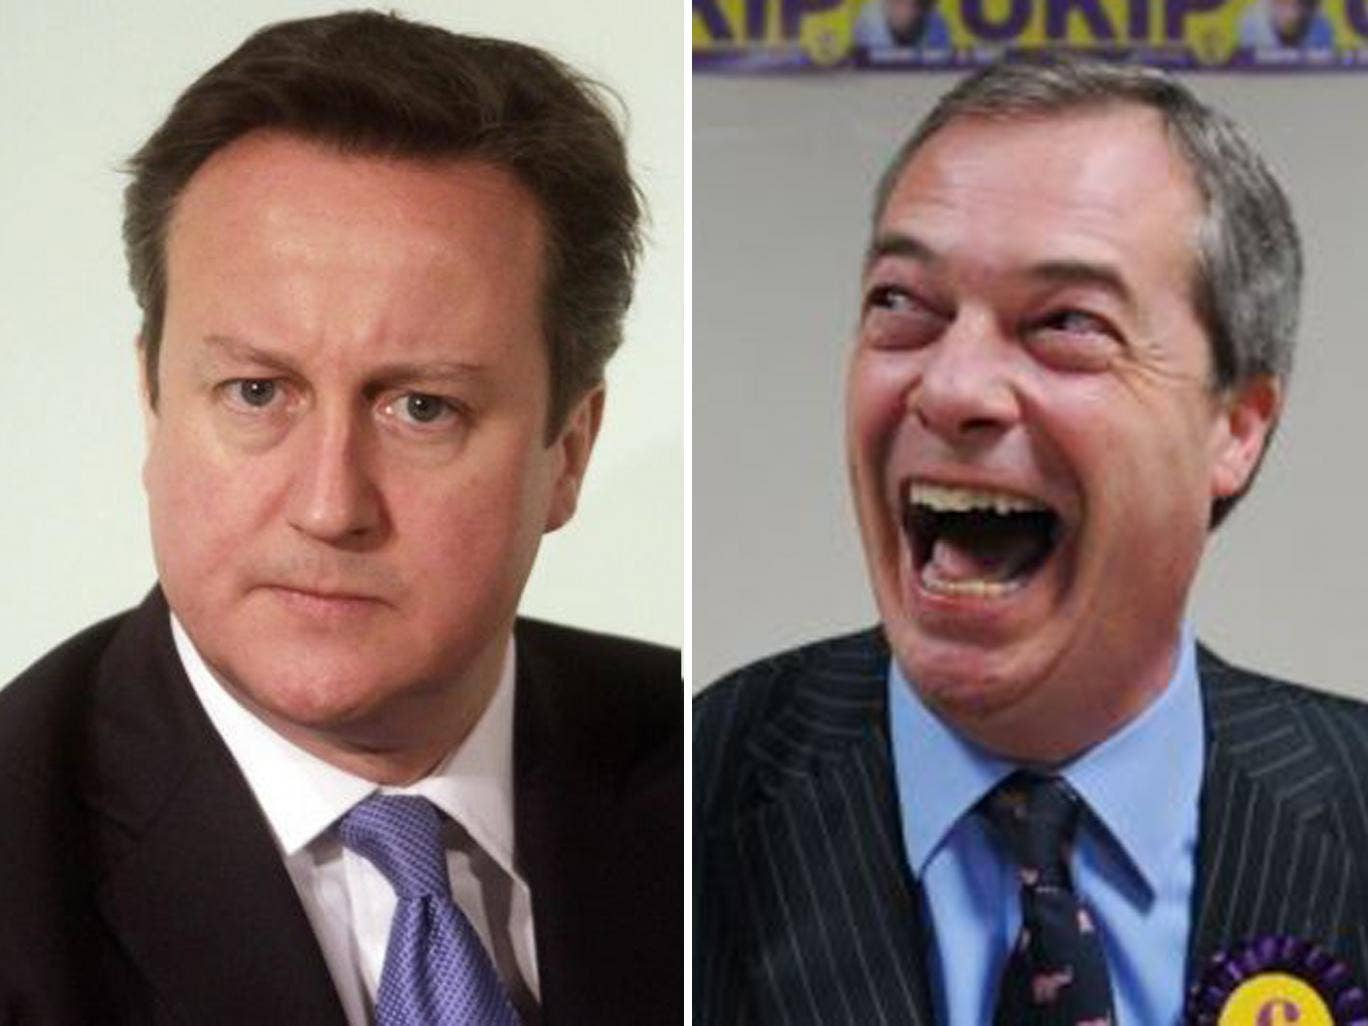 David Cameron was facing a backlash from hard line Tories today while Ukip leader Nigel Farage celebrated his party's candidate's second place spot in Eastleigh